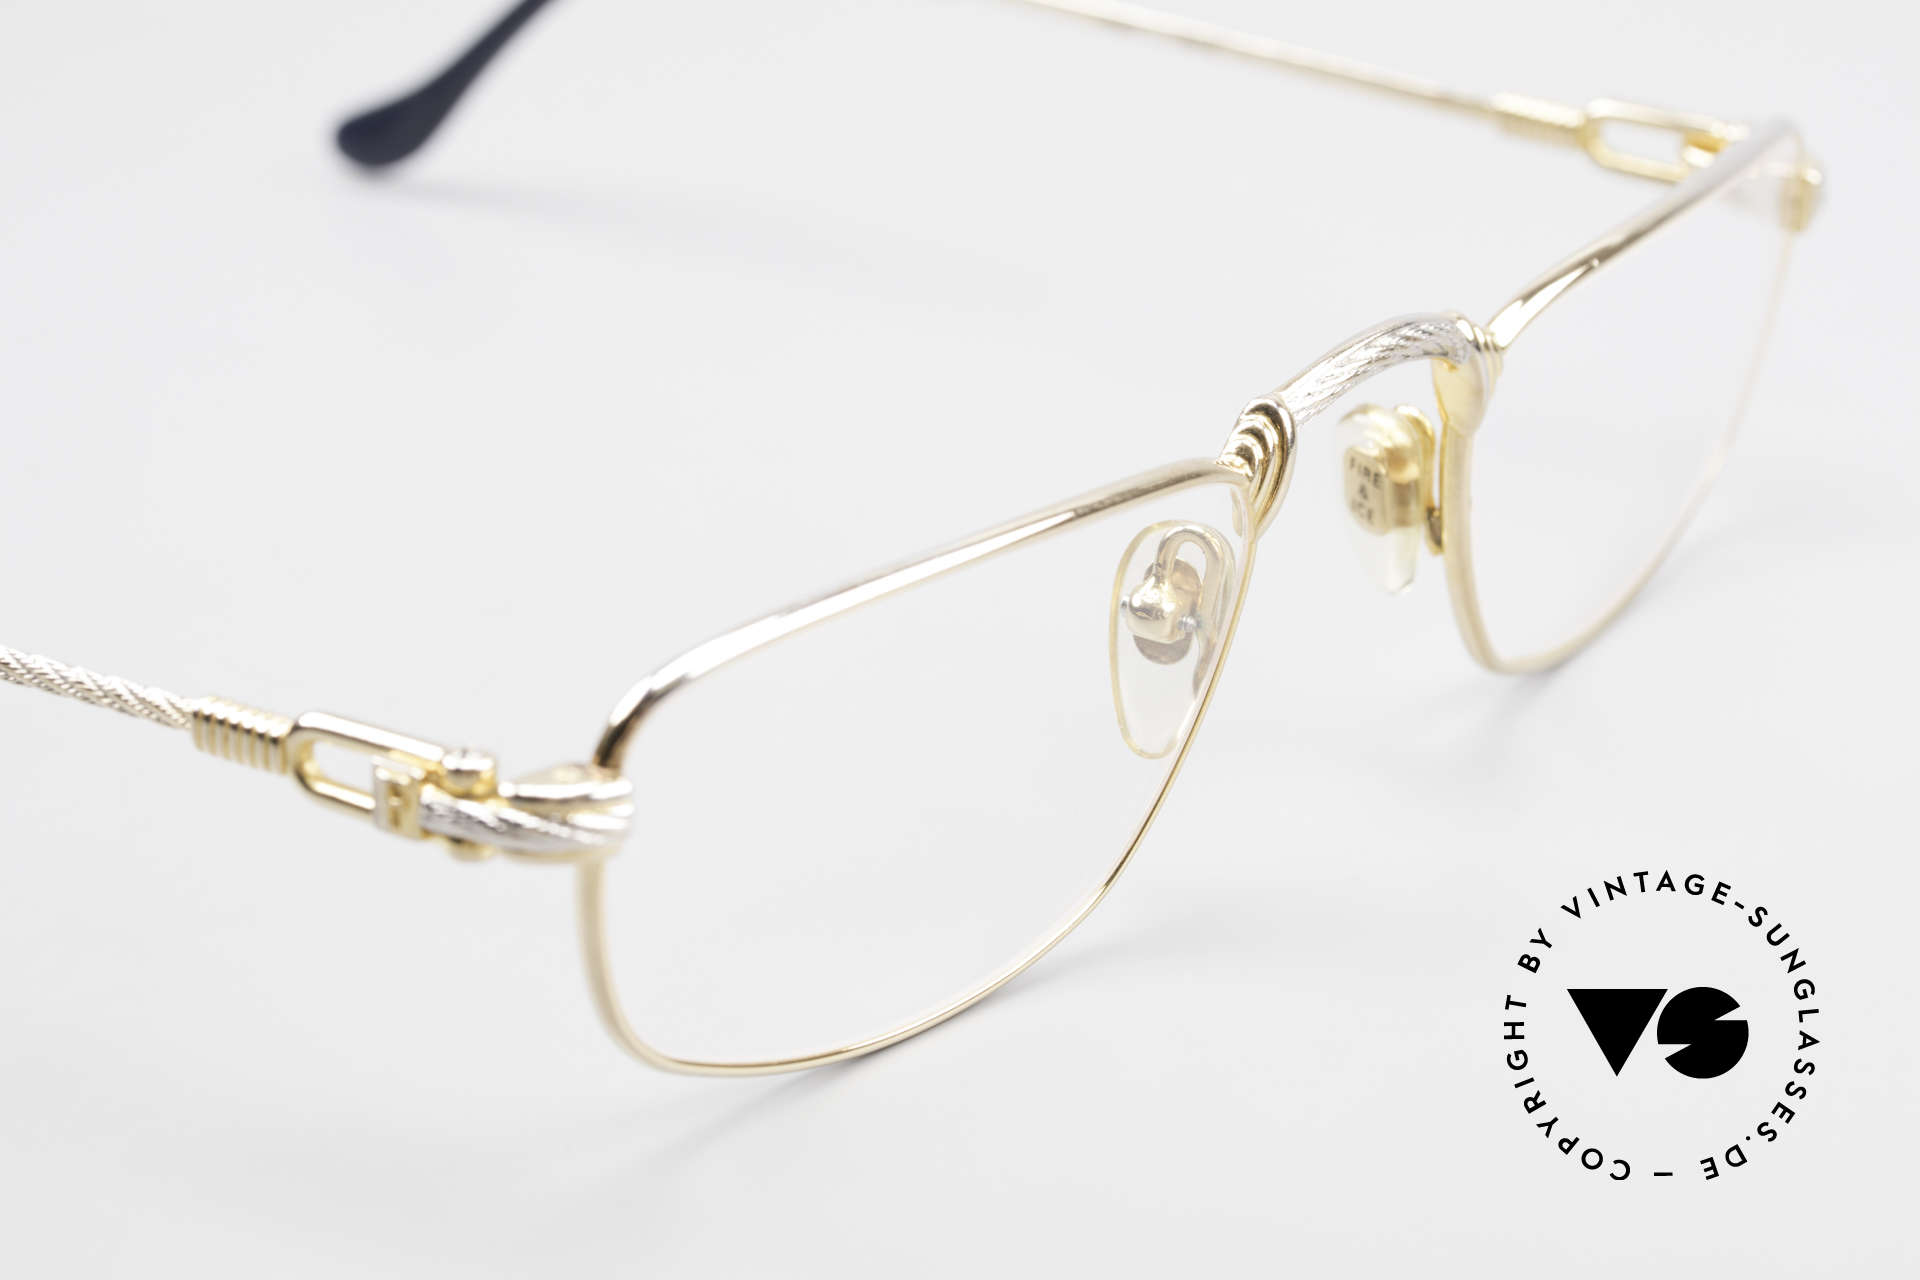 Fred Demi Lune Half Moon Reading Glasses, NO RETRO; original 90's commodity; rarity and vertu!, Made for Men and Women